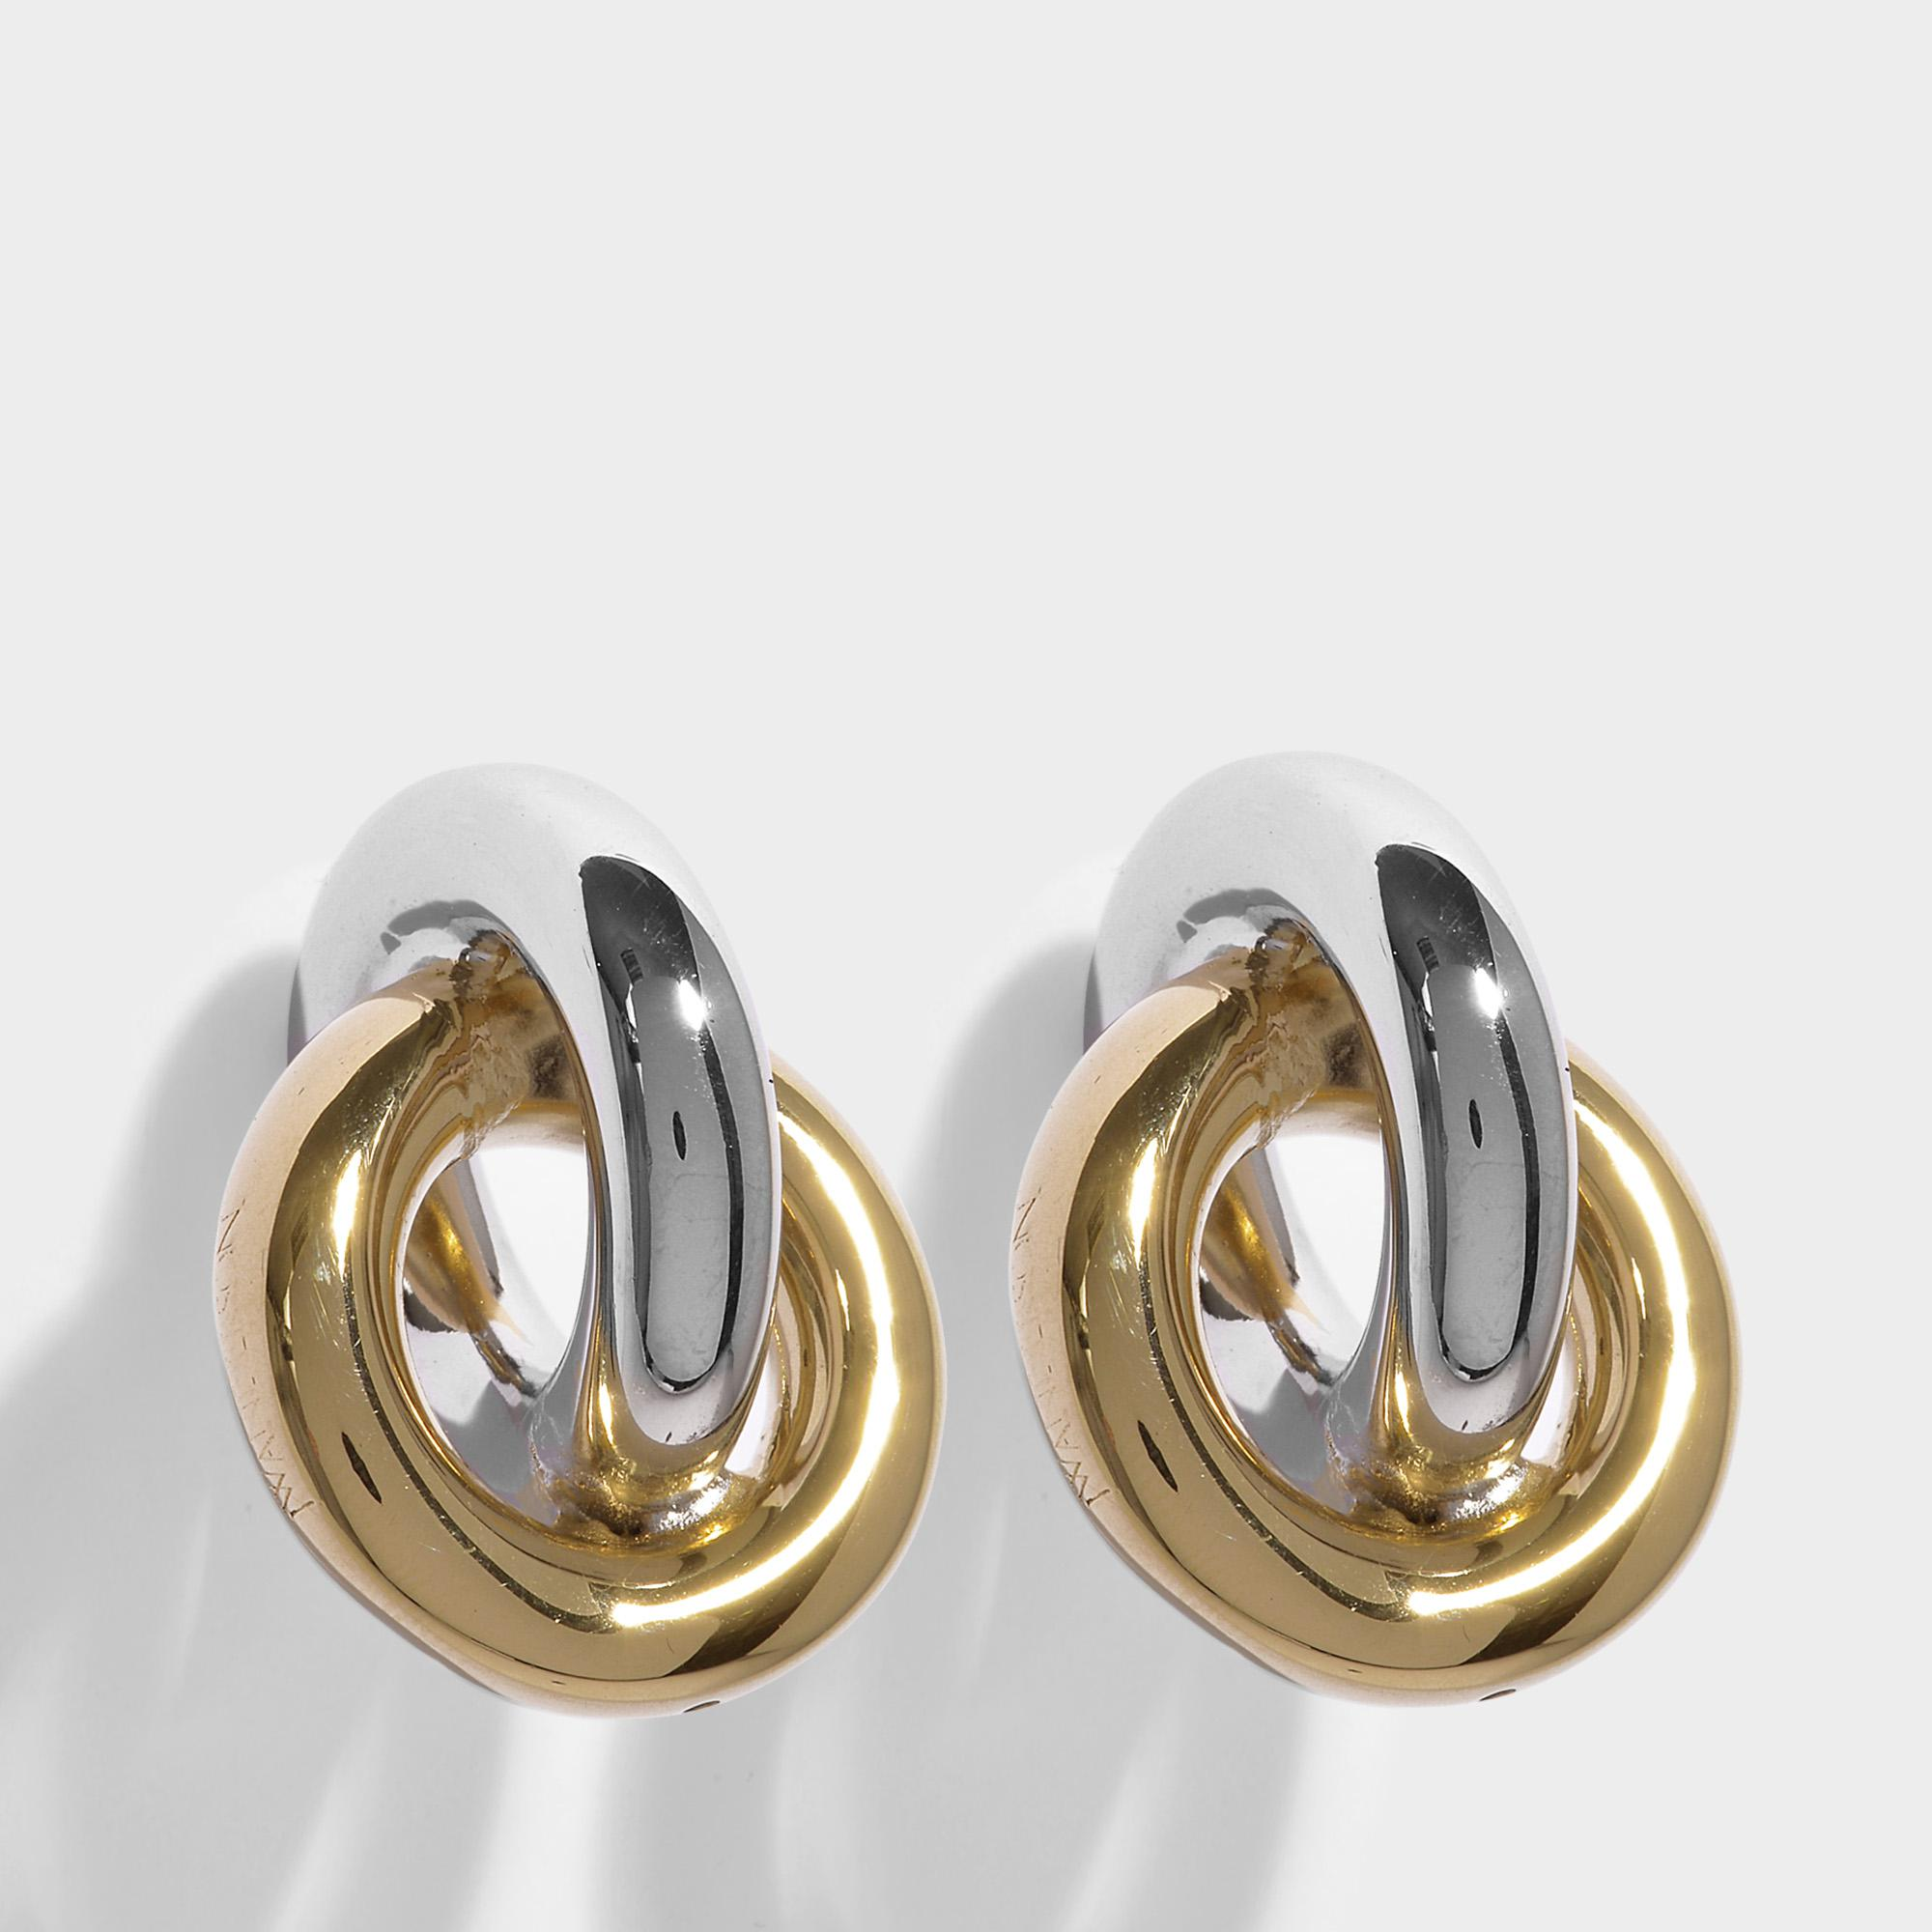 J.W.Anderson Double Earrings in Silver and Gold Eco Brass mnL8FbEbb5